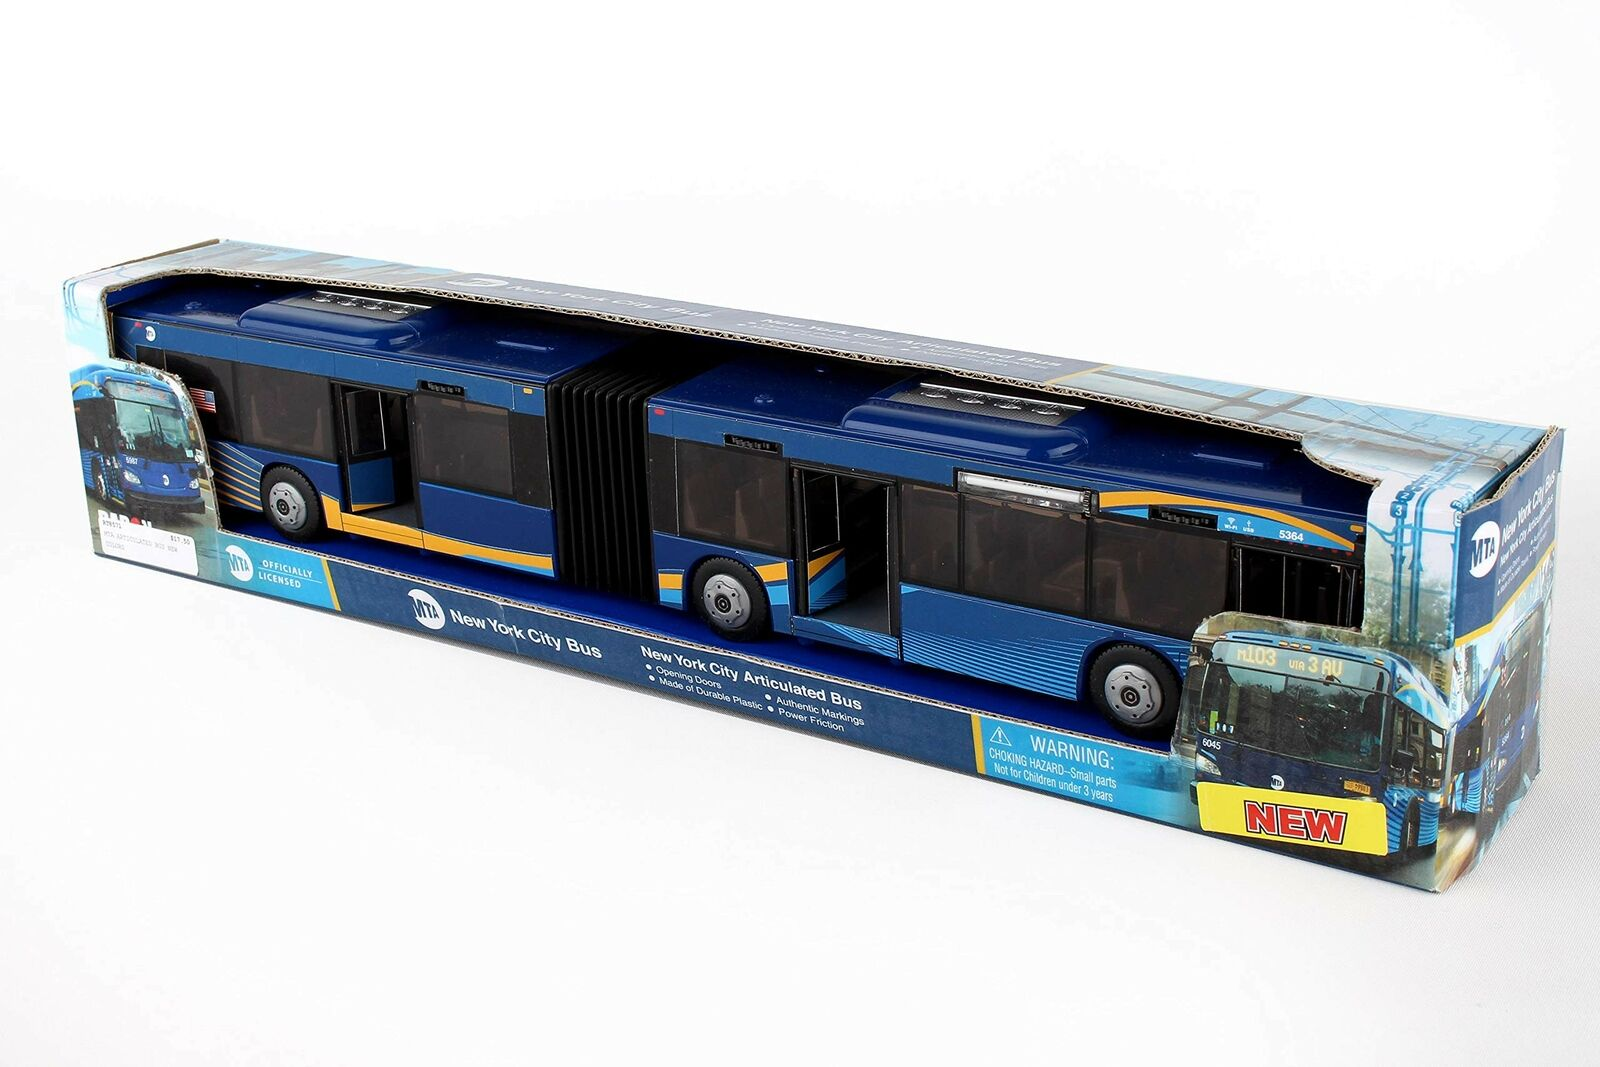 MTA Articulated Bus Diecast Model Toy Car Daron RT8571 Blue